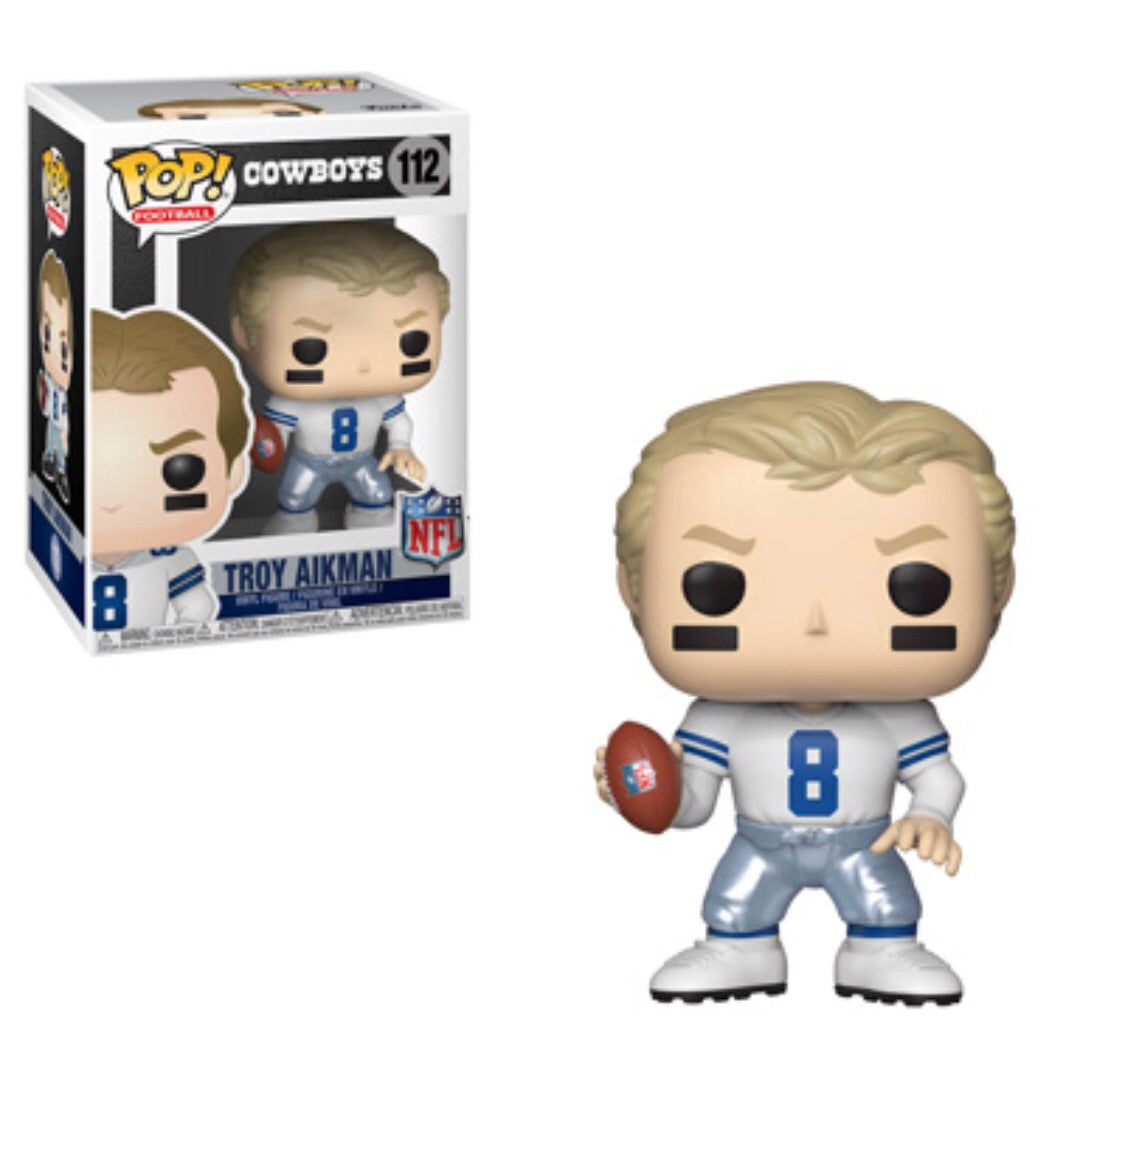 Pop! NFL Legends Troy Aikman